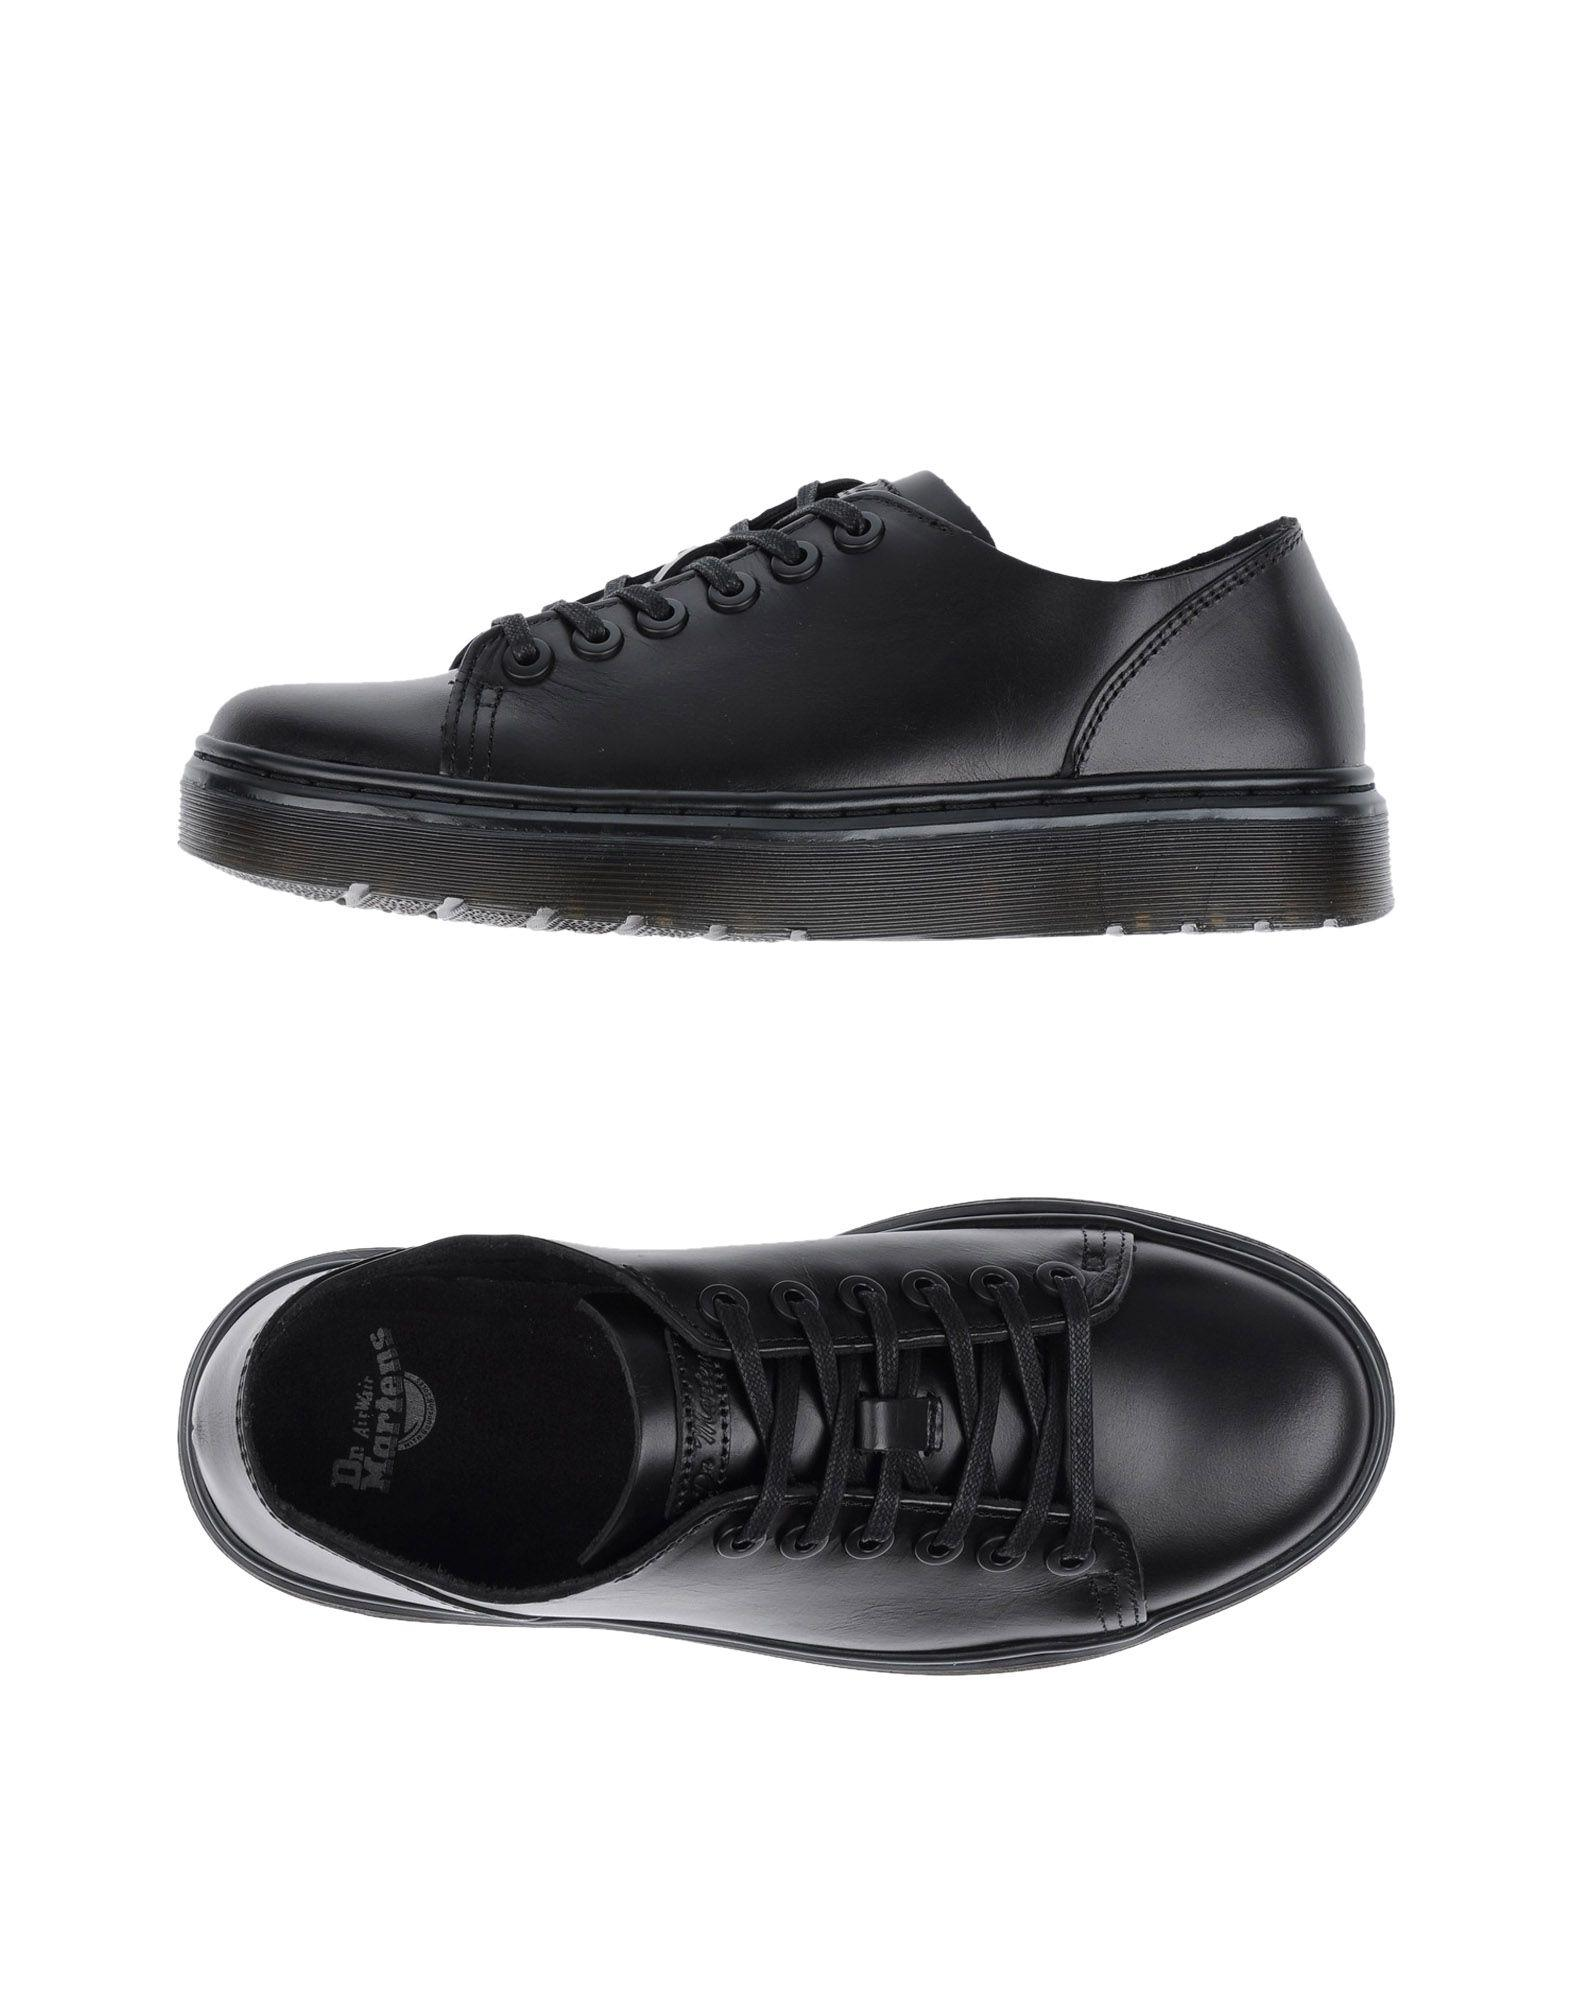 Dr Martens Leather Low Tops Amp Sneakers In Black Lyst